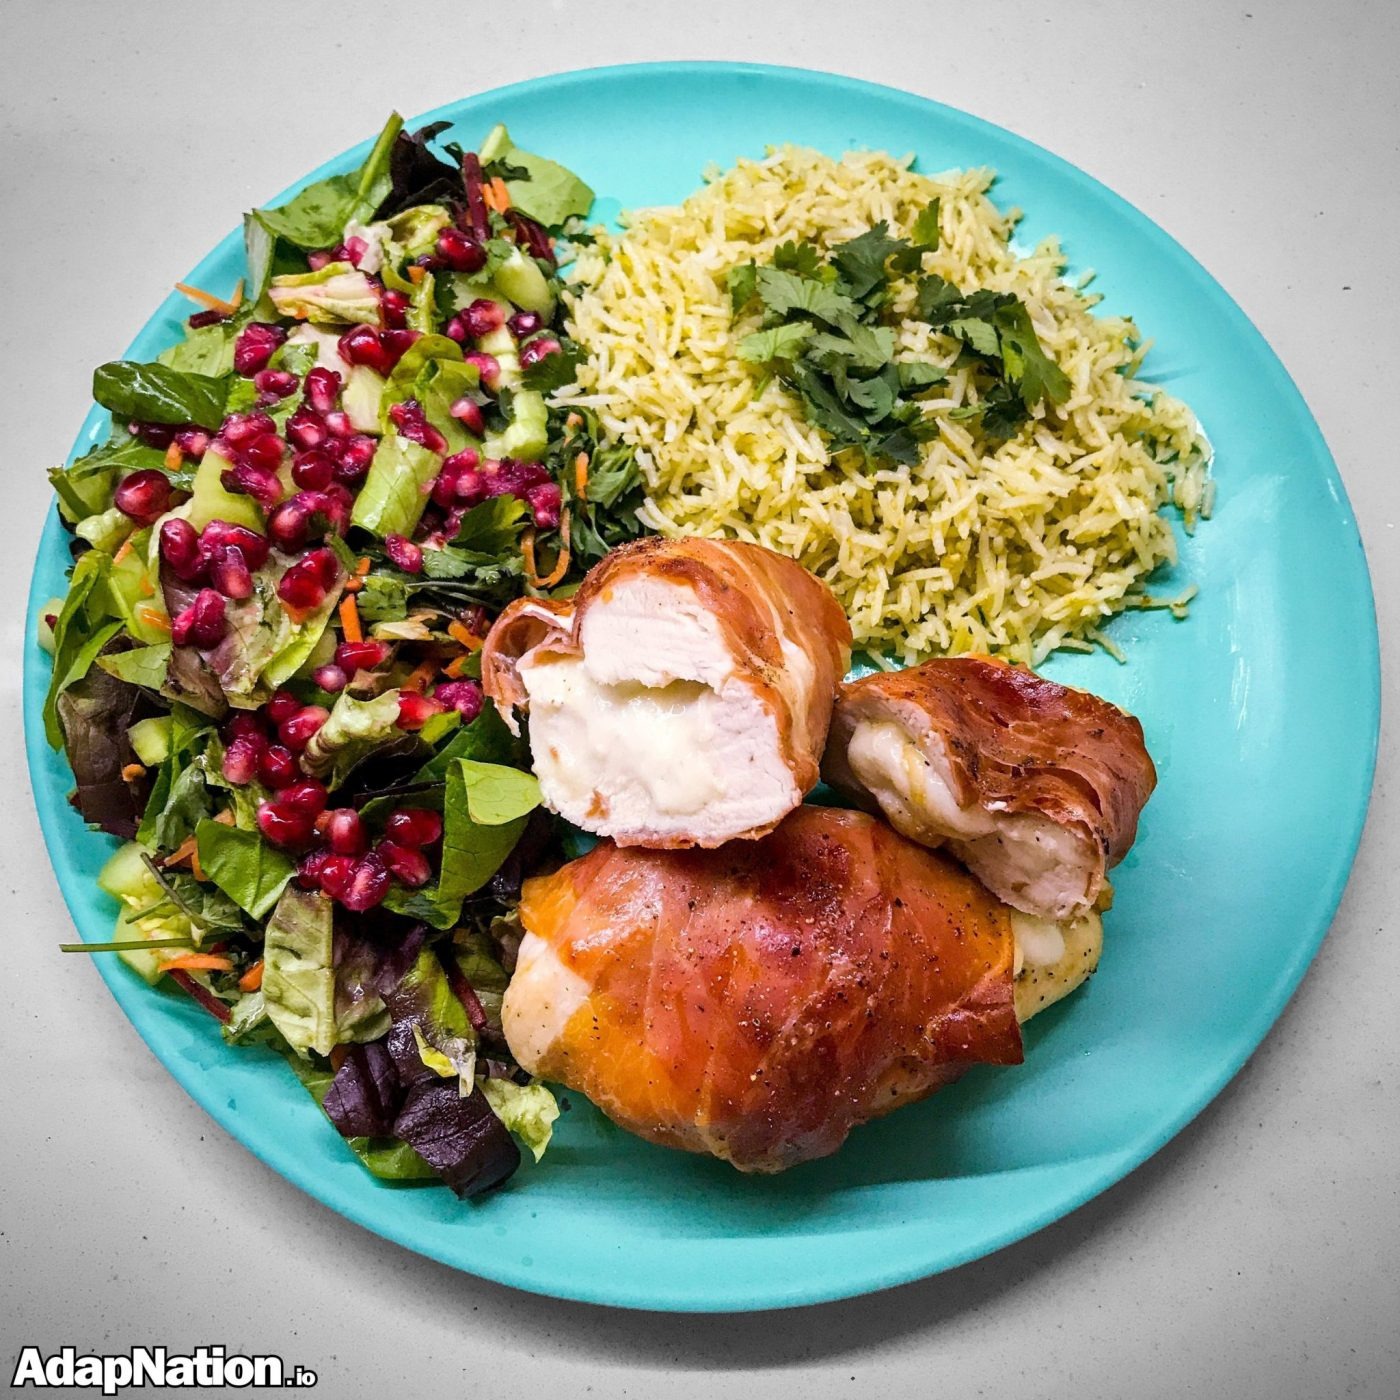 Prosciutto & Mozzarella Chicken, Pesto Rice & Pomegranate Salad